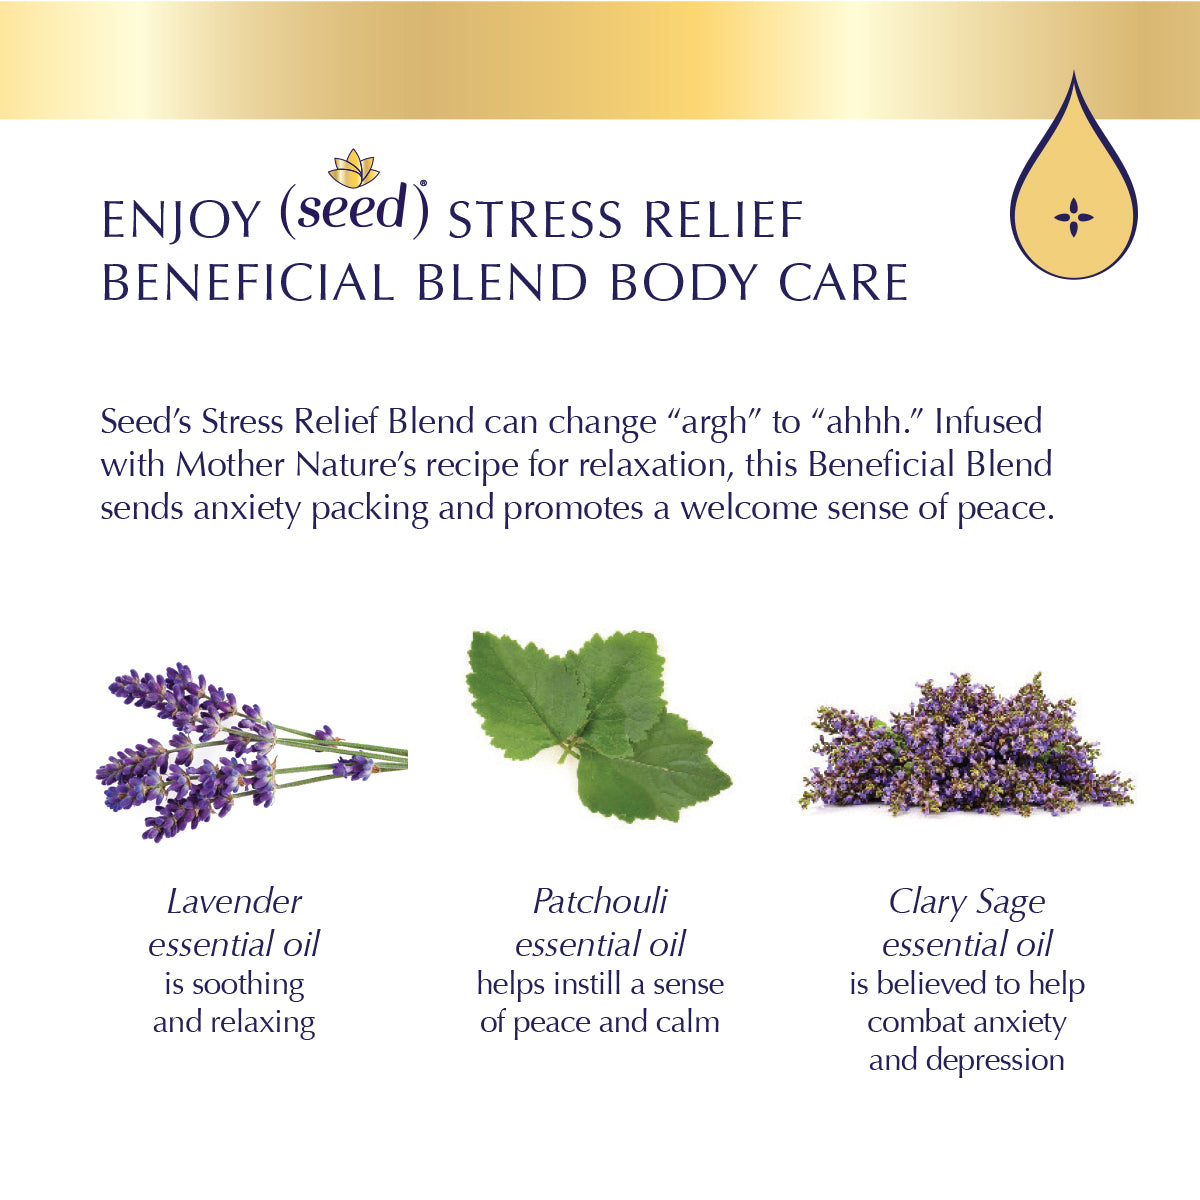 Seed Stress Relief Blend Body Care with lavender, patchouli, and clary sage essential oils